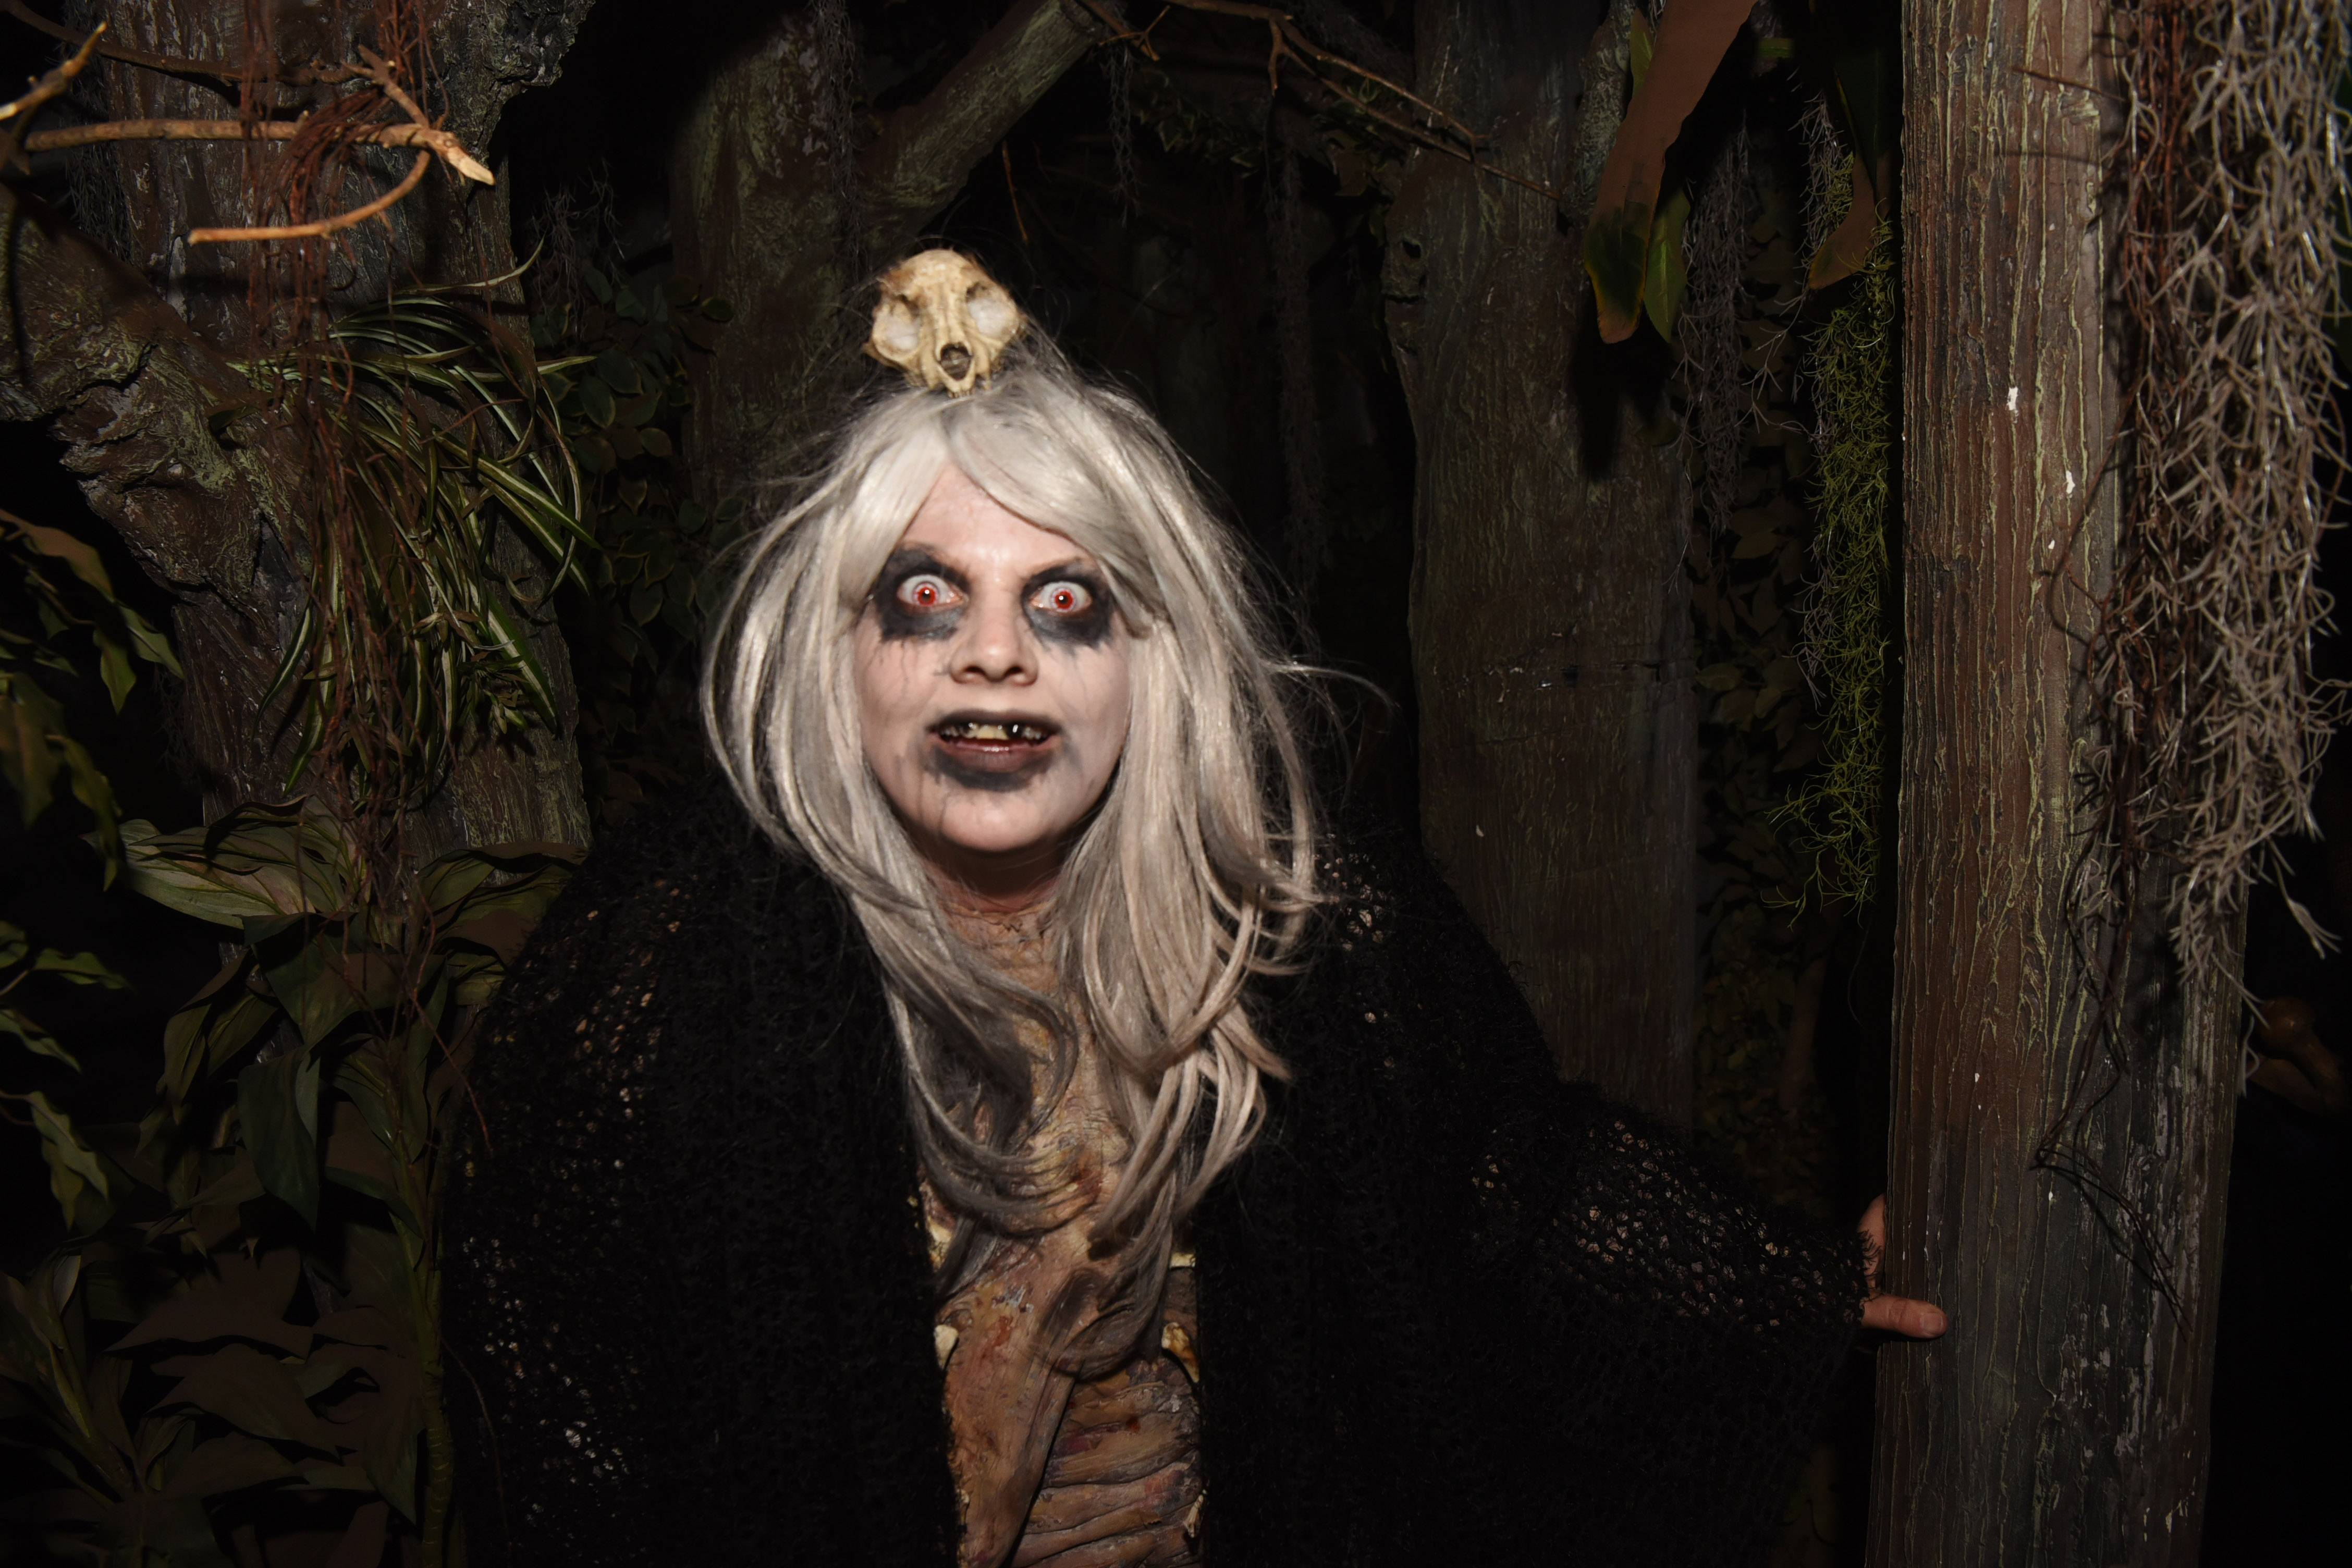 What scares you? An old hag, perhaps? Find out at Rosemont's Disturbia: Screams in the Park.